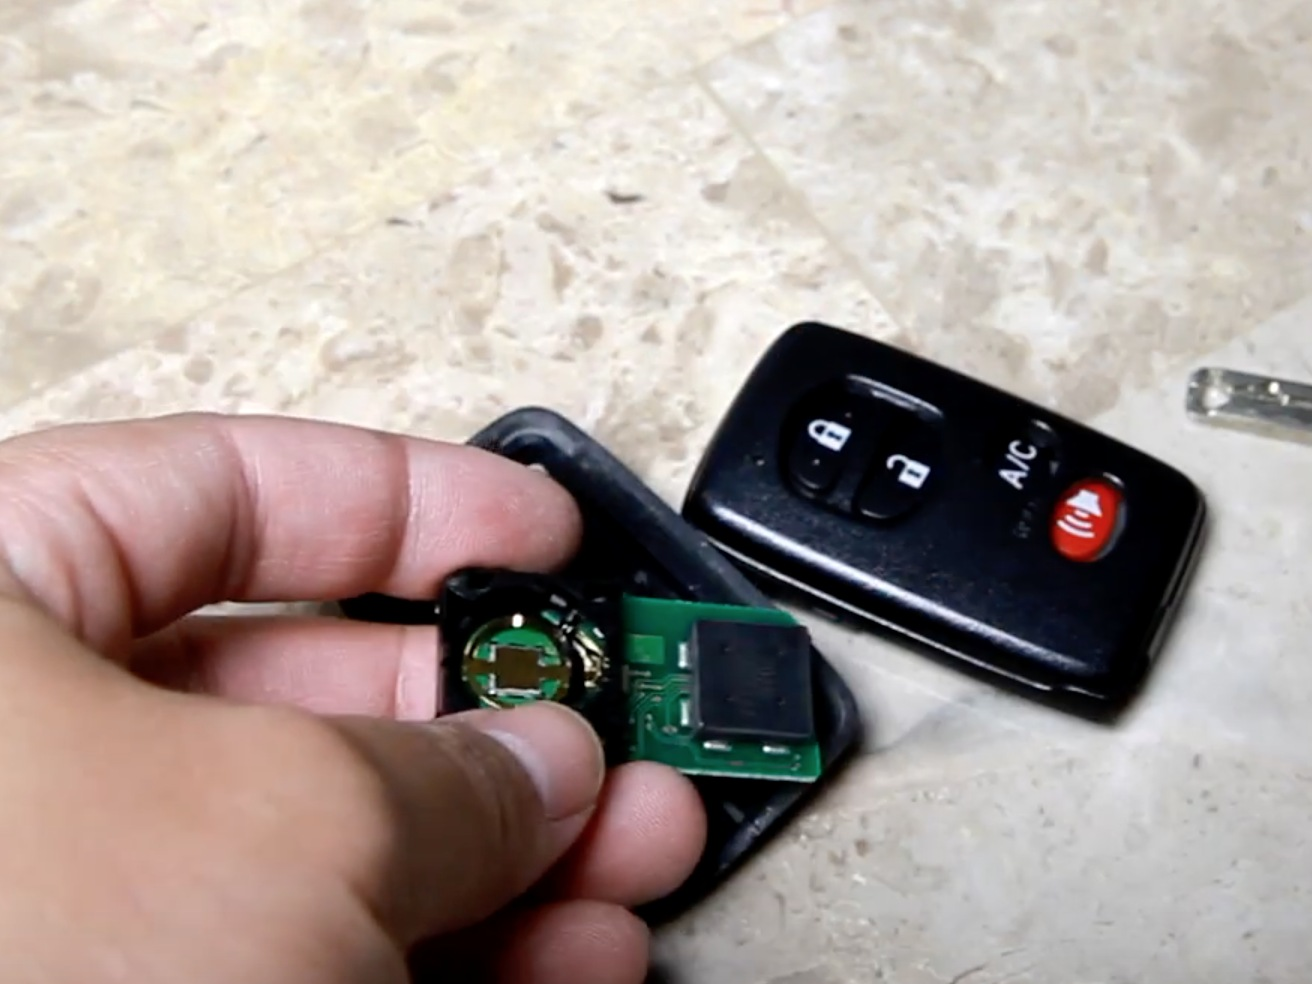 2009-2015 Toyota Prius Key Fob Battery Replacement (2009, 2010, 2011, 2012,  2013, 2014, 2015) - iFixit Repair Guide